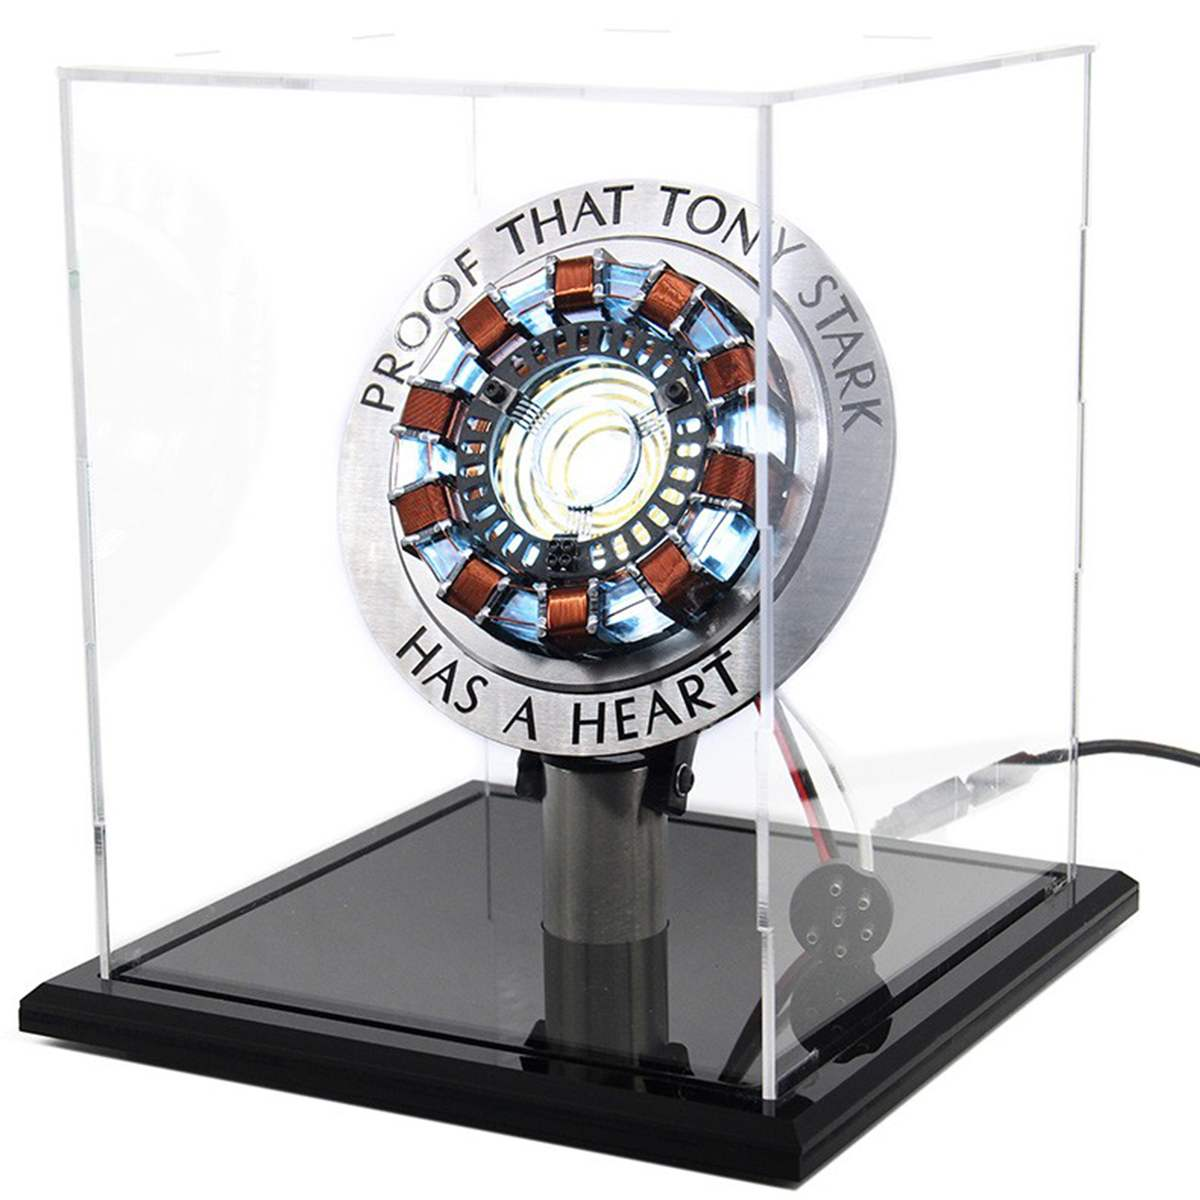 Free Fast Shipping 1:1 Scale Arc Reactor Need To Assemble Reactor Diameter Of 8cm With LED Light Action With English Manual MK1